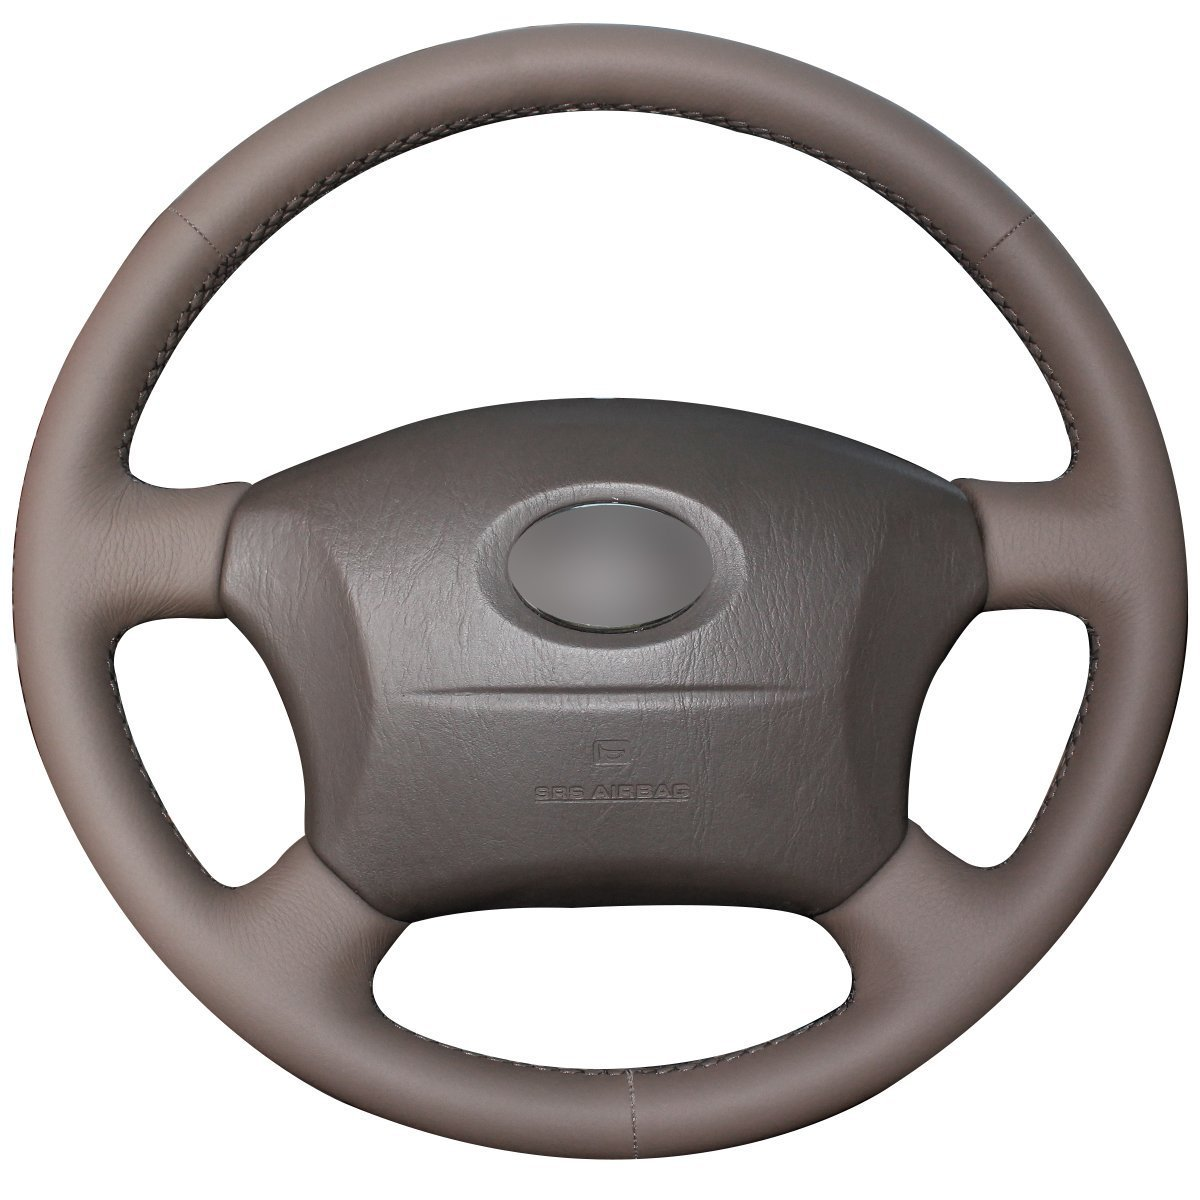 amazon com loncky leather steering wheel cover for 2005 2011 toyotaloncky leather steering wheel cover for 2005 2011 toyota tacoma 2003 2009 4runner 2004 2010 sienna 2003 2007 sequoia 2004 2007 highlander 2005 2006